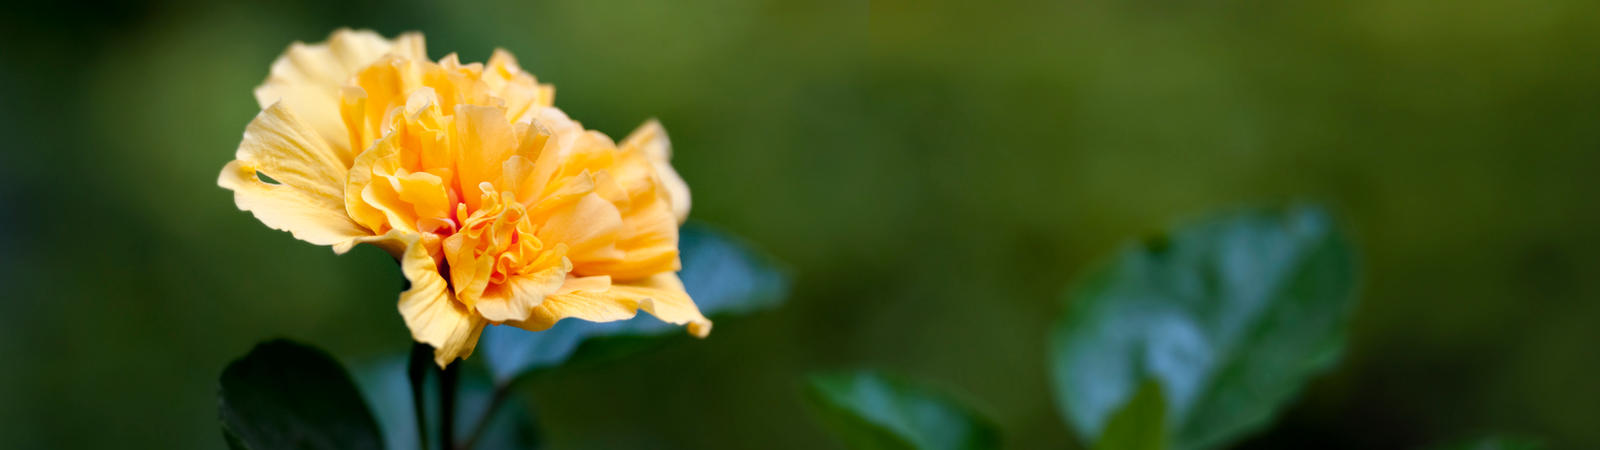 Yellow Flower by Bathlamos